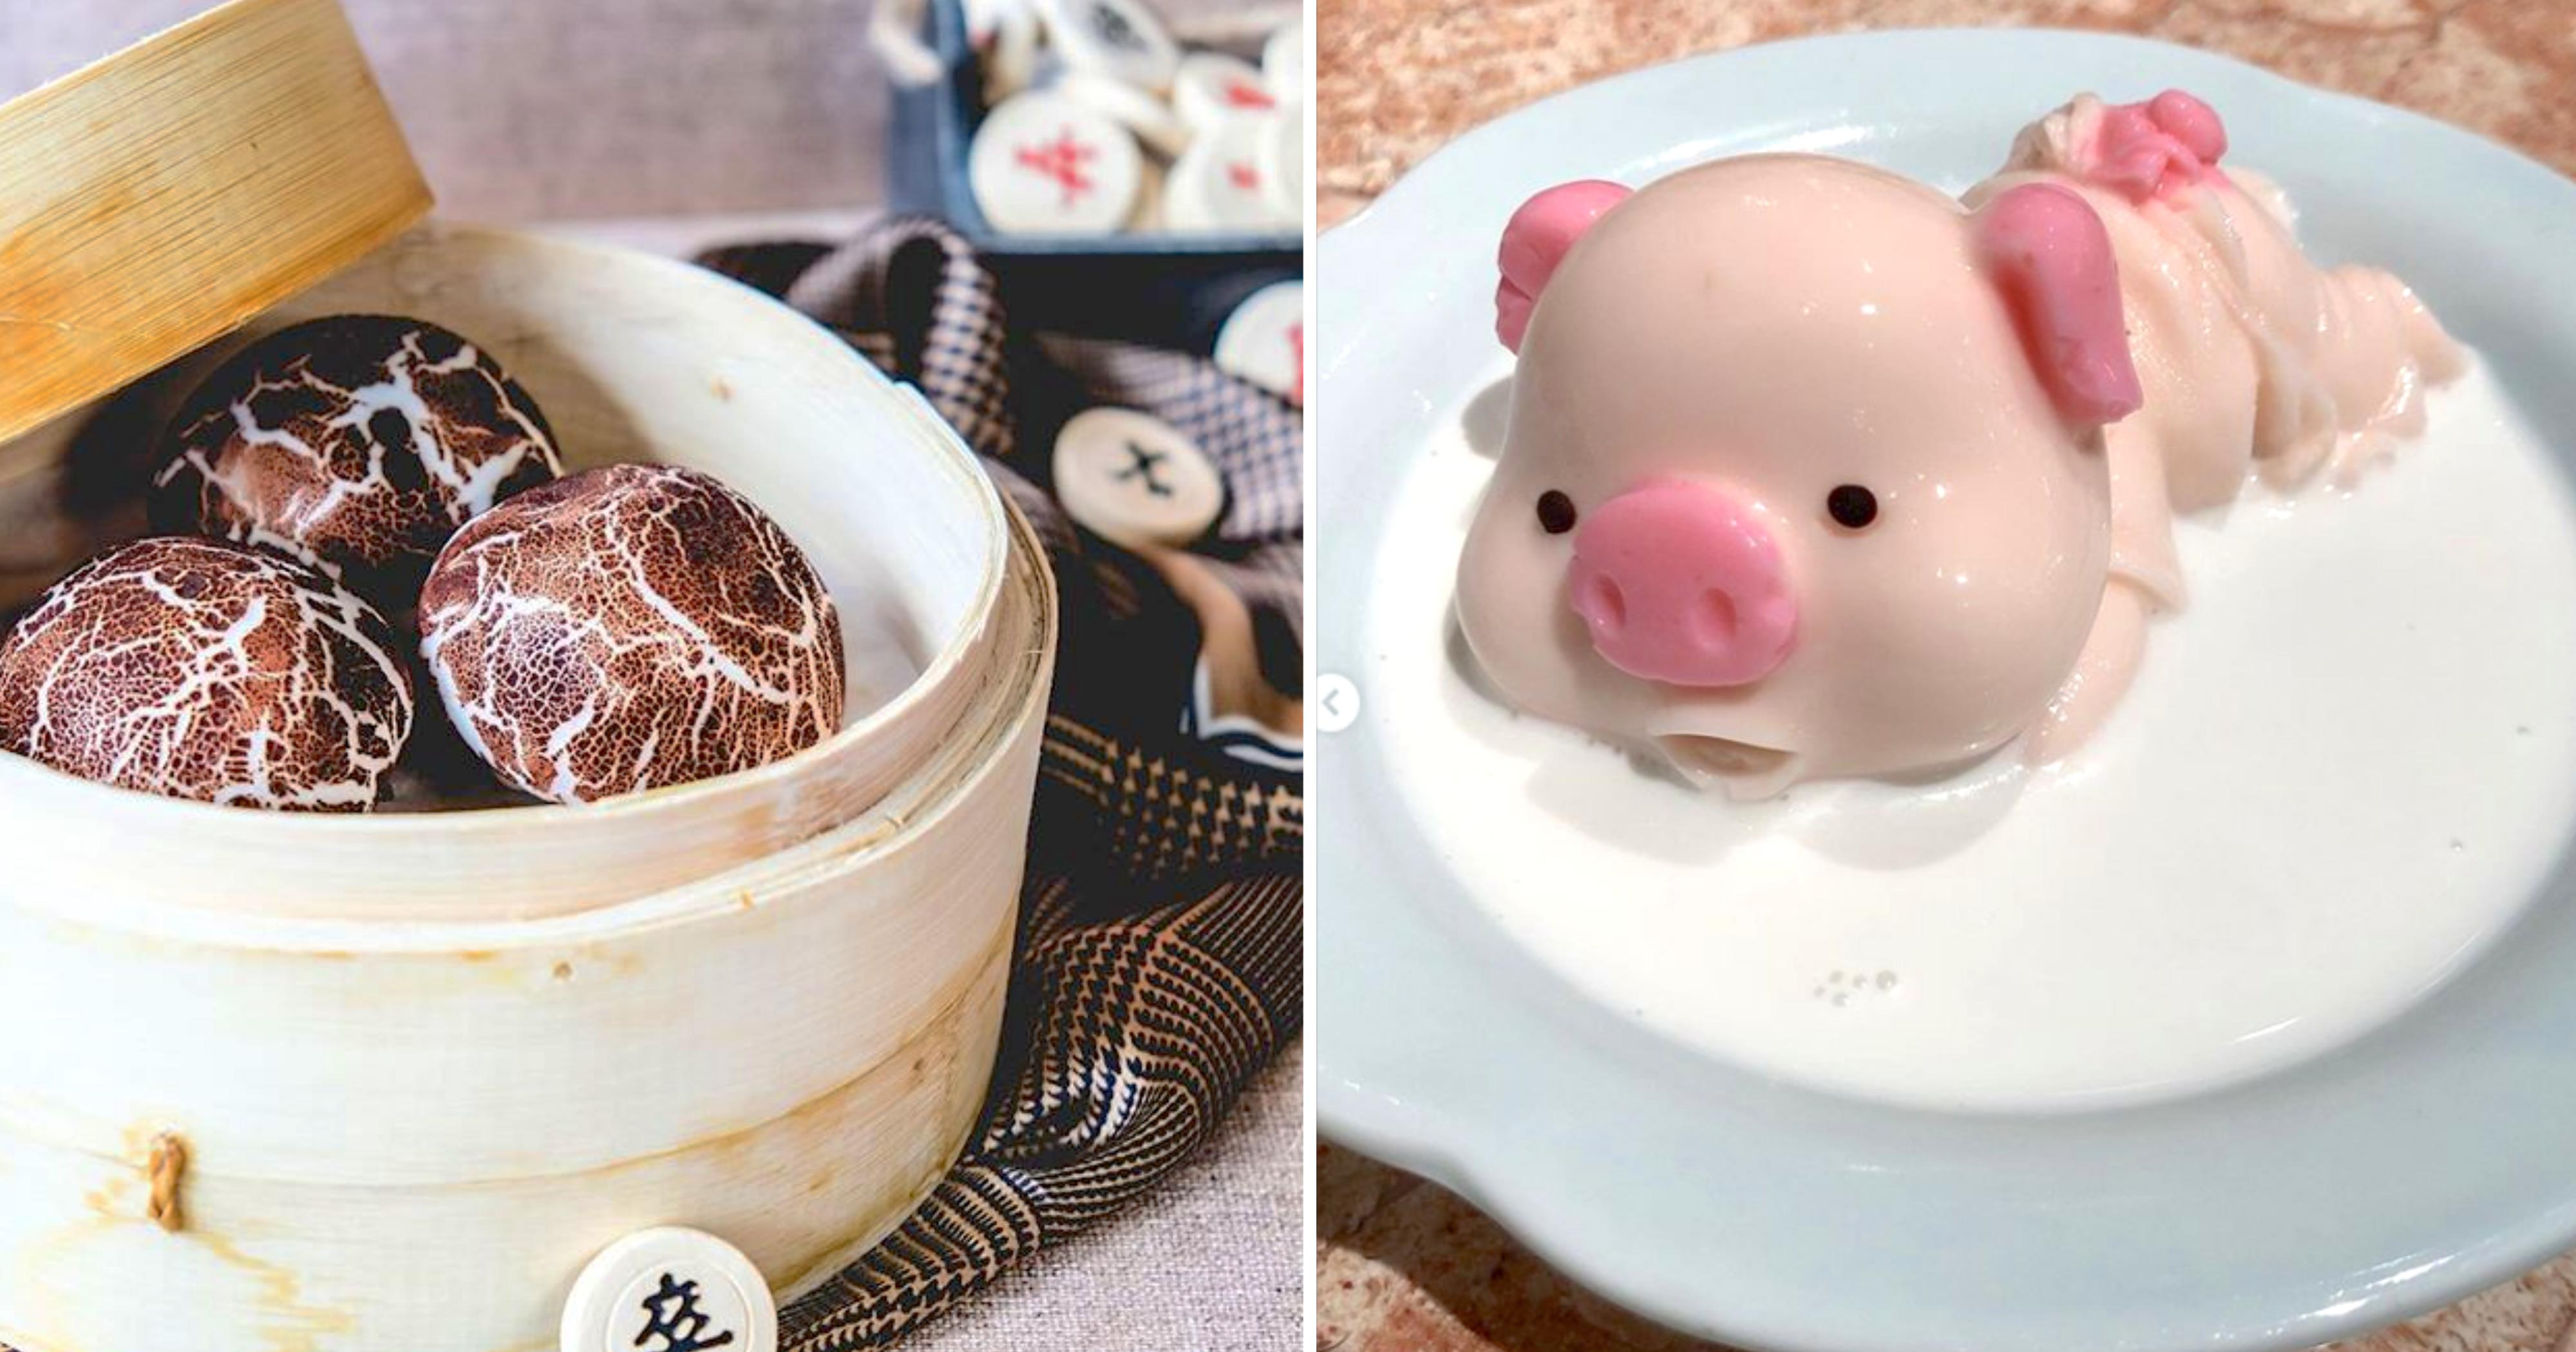 Famous HK dim sum restaurant opens in S'pore with jiggly pig ...